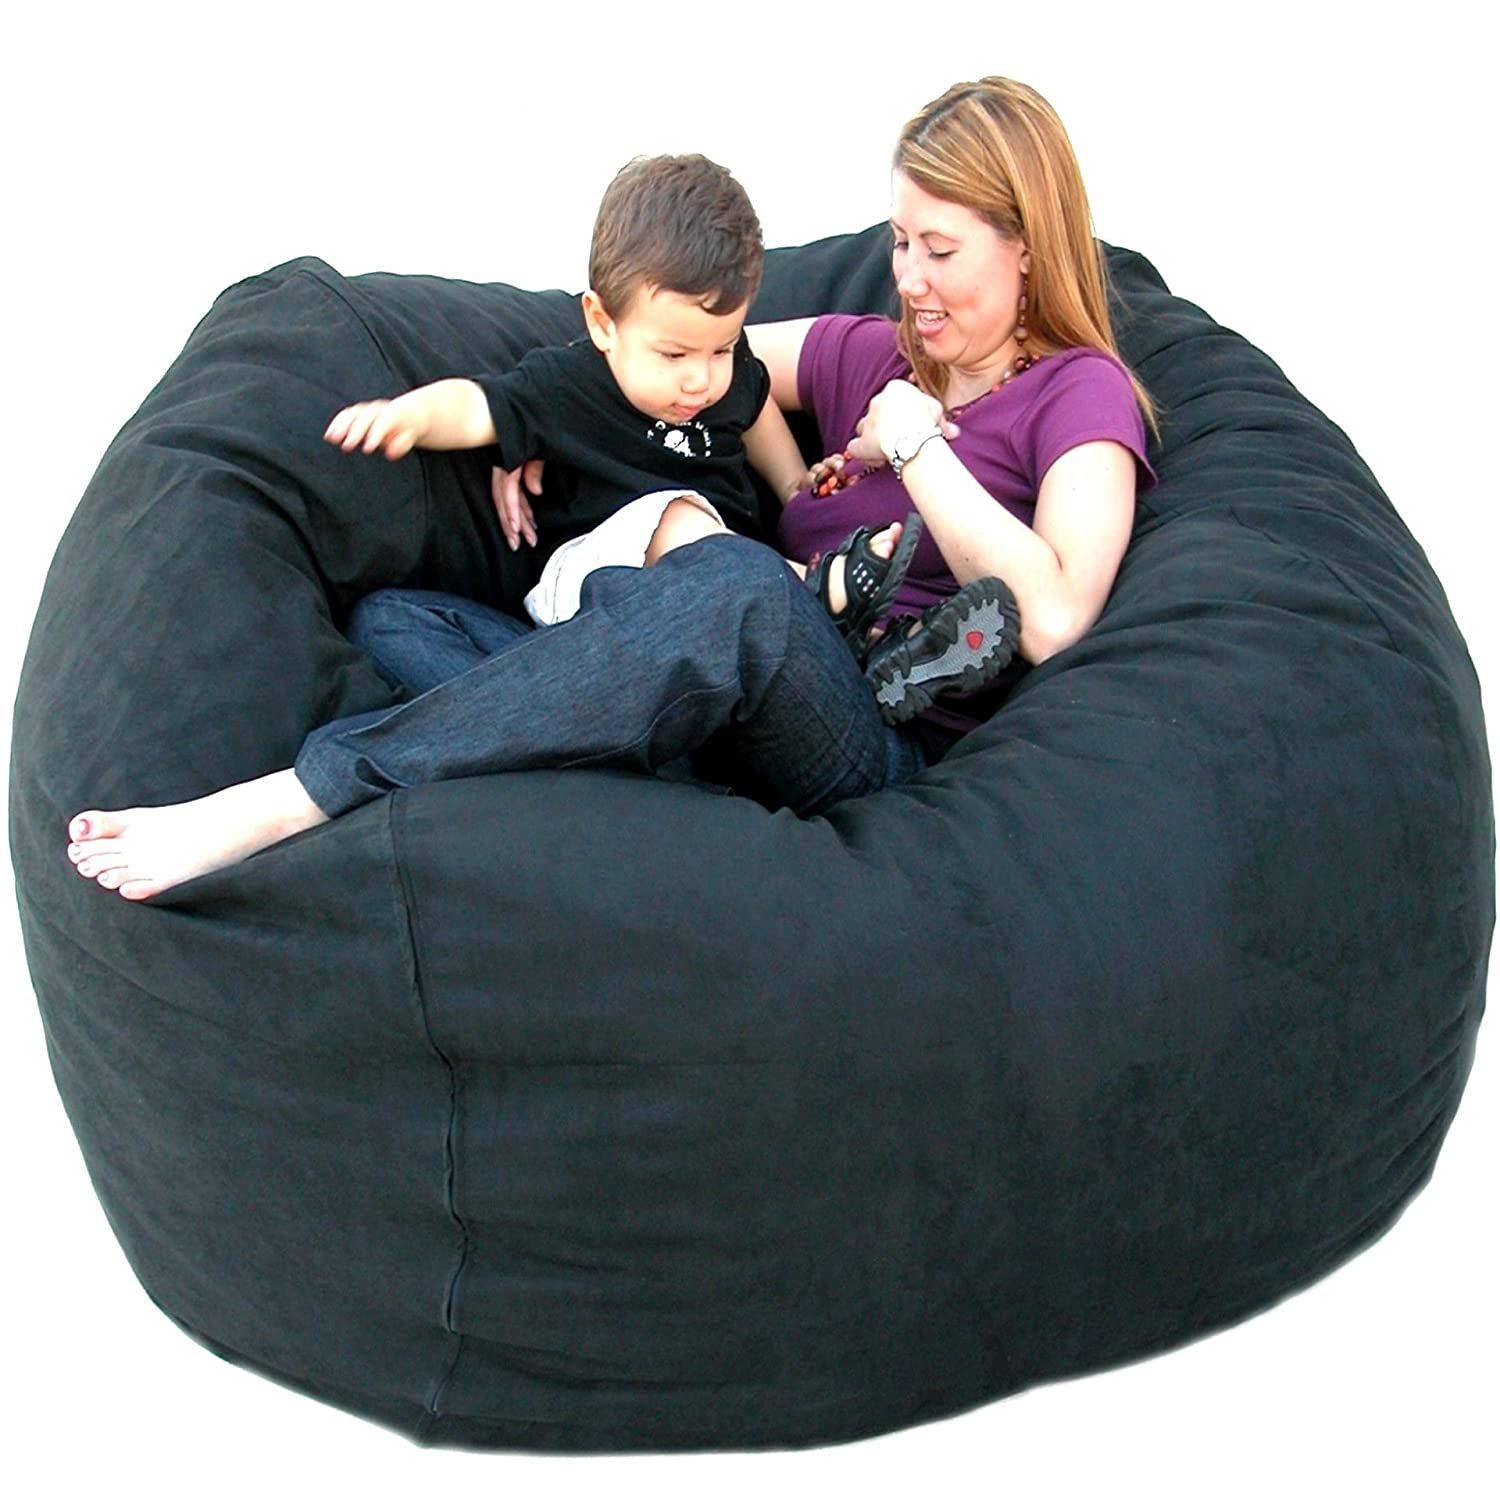 Best Of Large Bean Bag Chairs Cheap Lovely Inmunoanalisiscom